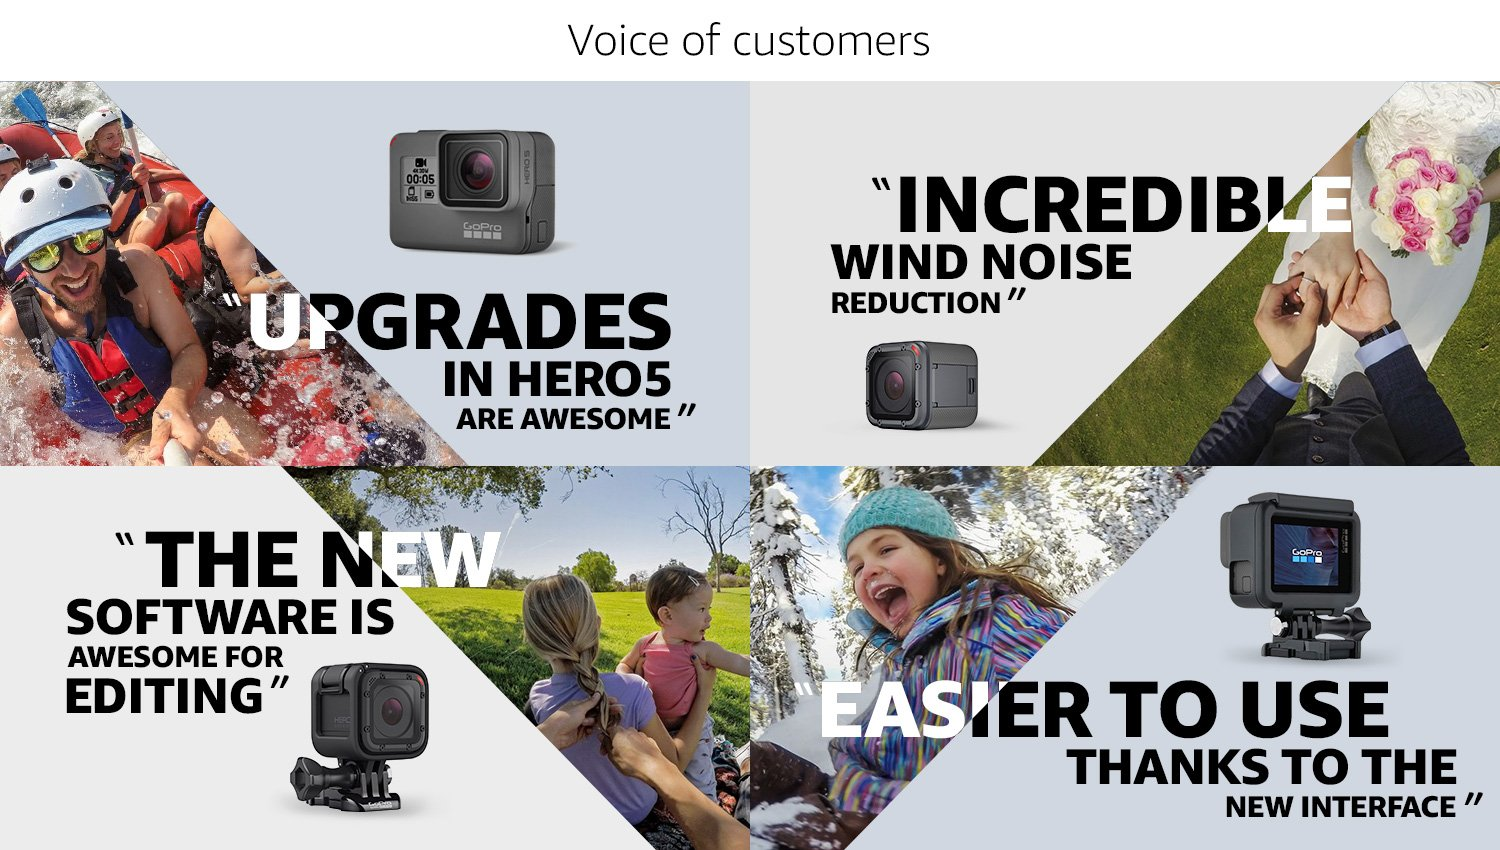 Voice of customers on Hero